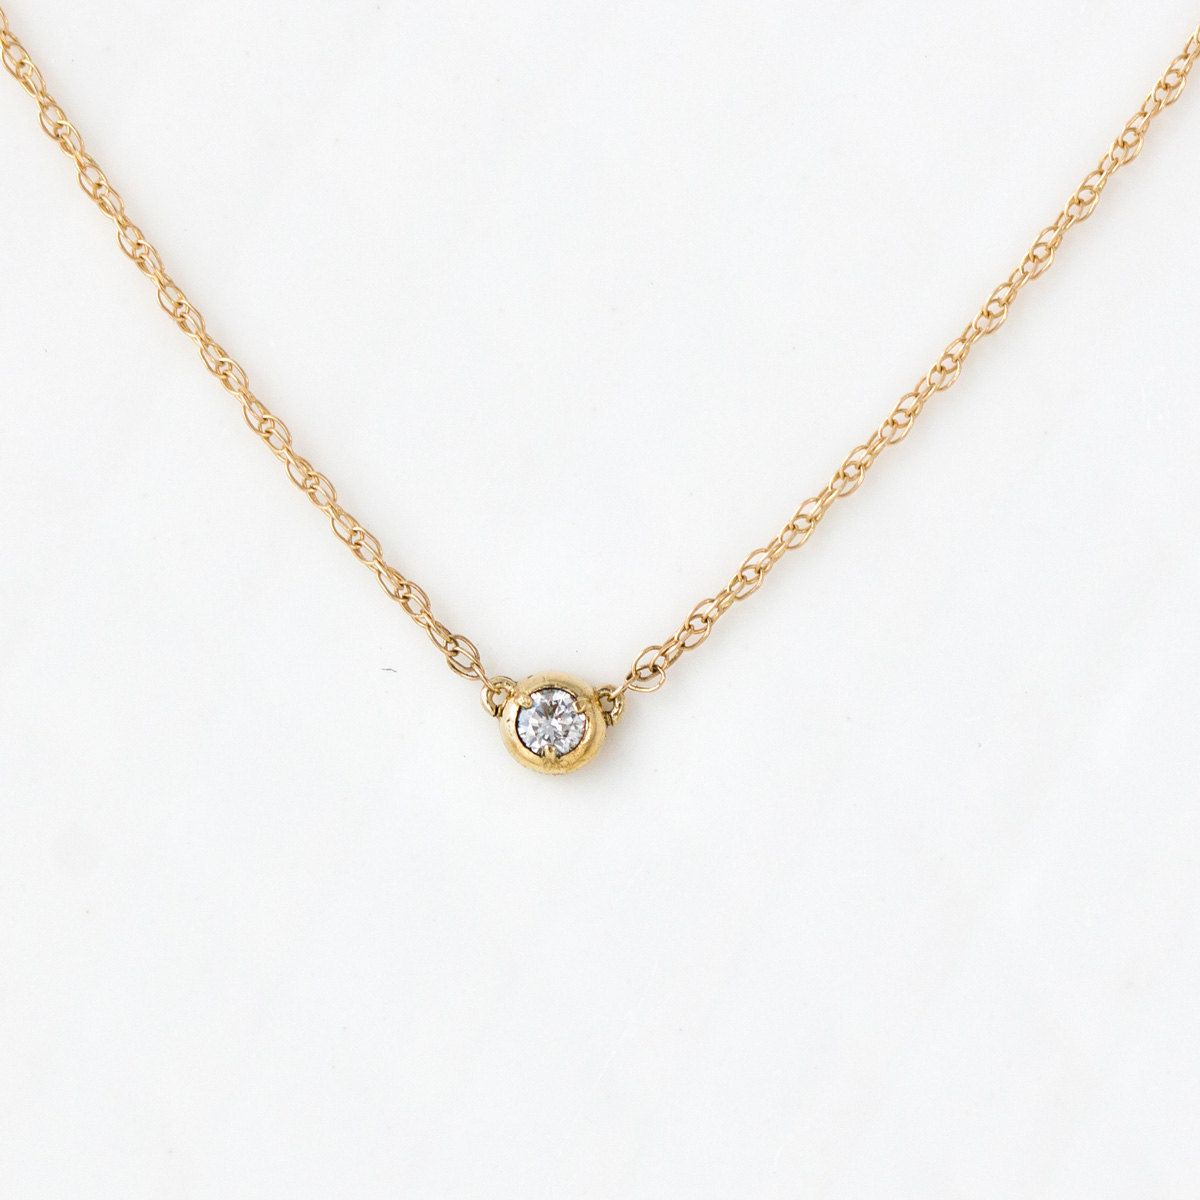 Single diamond necklace in k yellow gold handmade by melanie